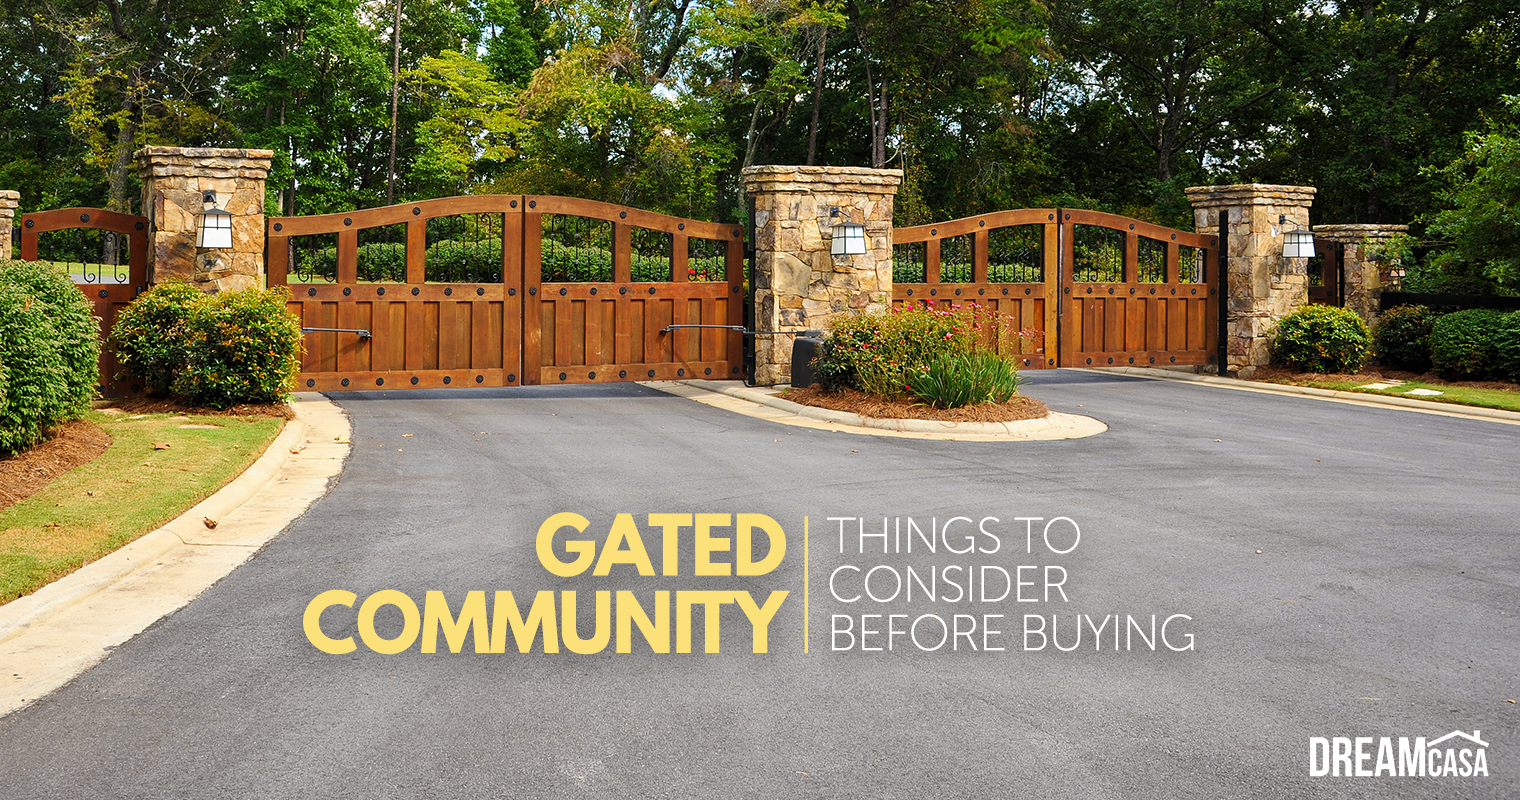 Gated Community: Things To Consider Before Buying